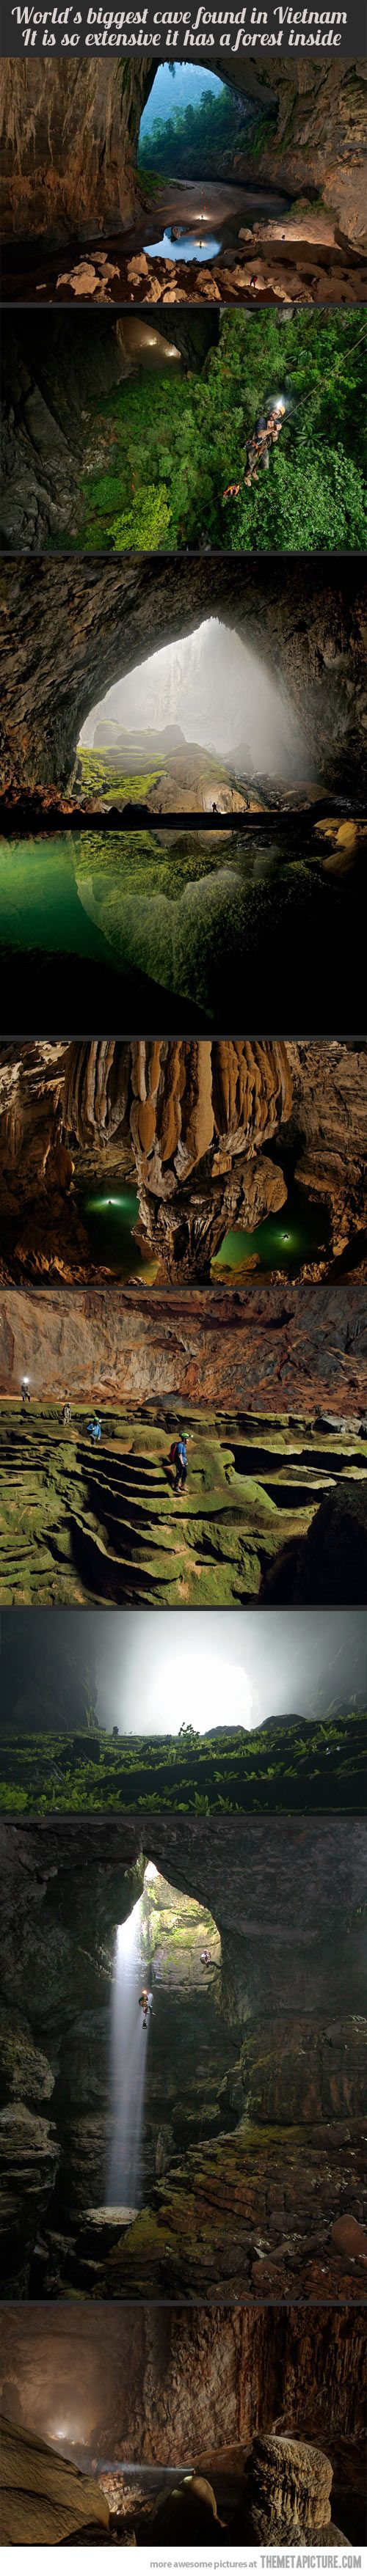 Largest cave in the world. It's so incredible that I don't know which board to pin it to. Regardless is it's beautiful photography, or amazing history, relevant news that I care about or a scientific marvel, the one thing that I know for sure is that it's WICKED COOL!